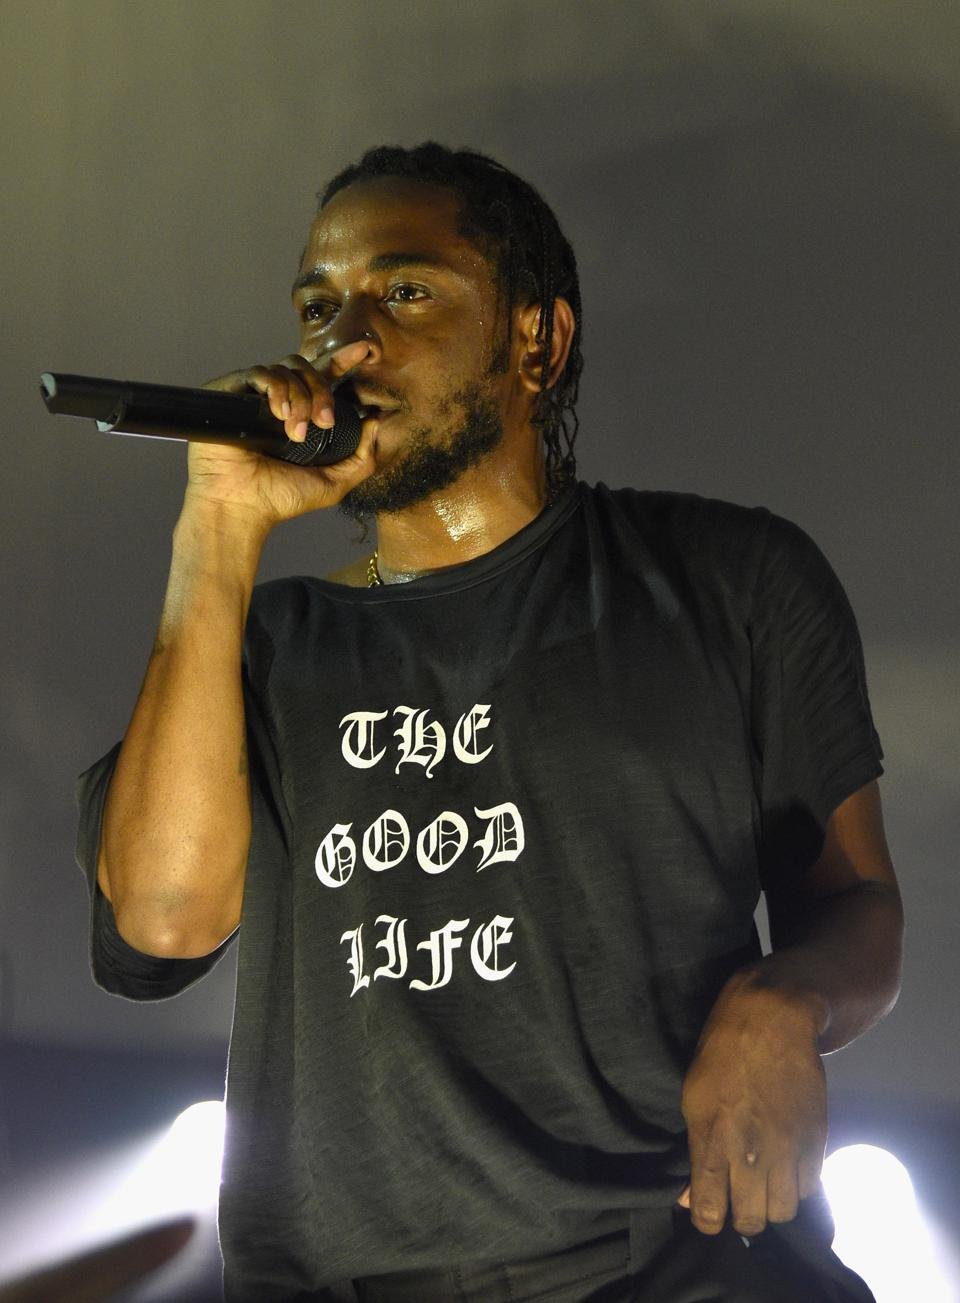 Kendrick Lamar Talks Growth, Success, And Being A Voice For The People